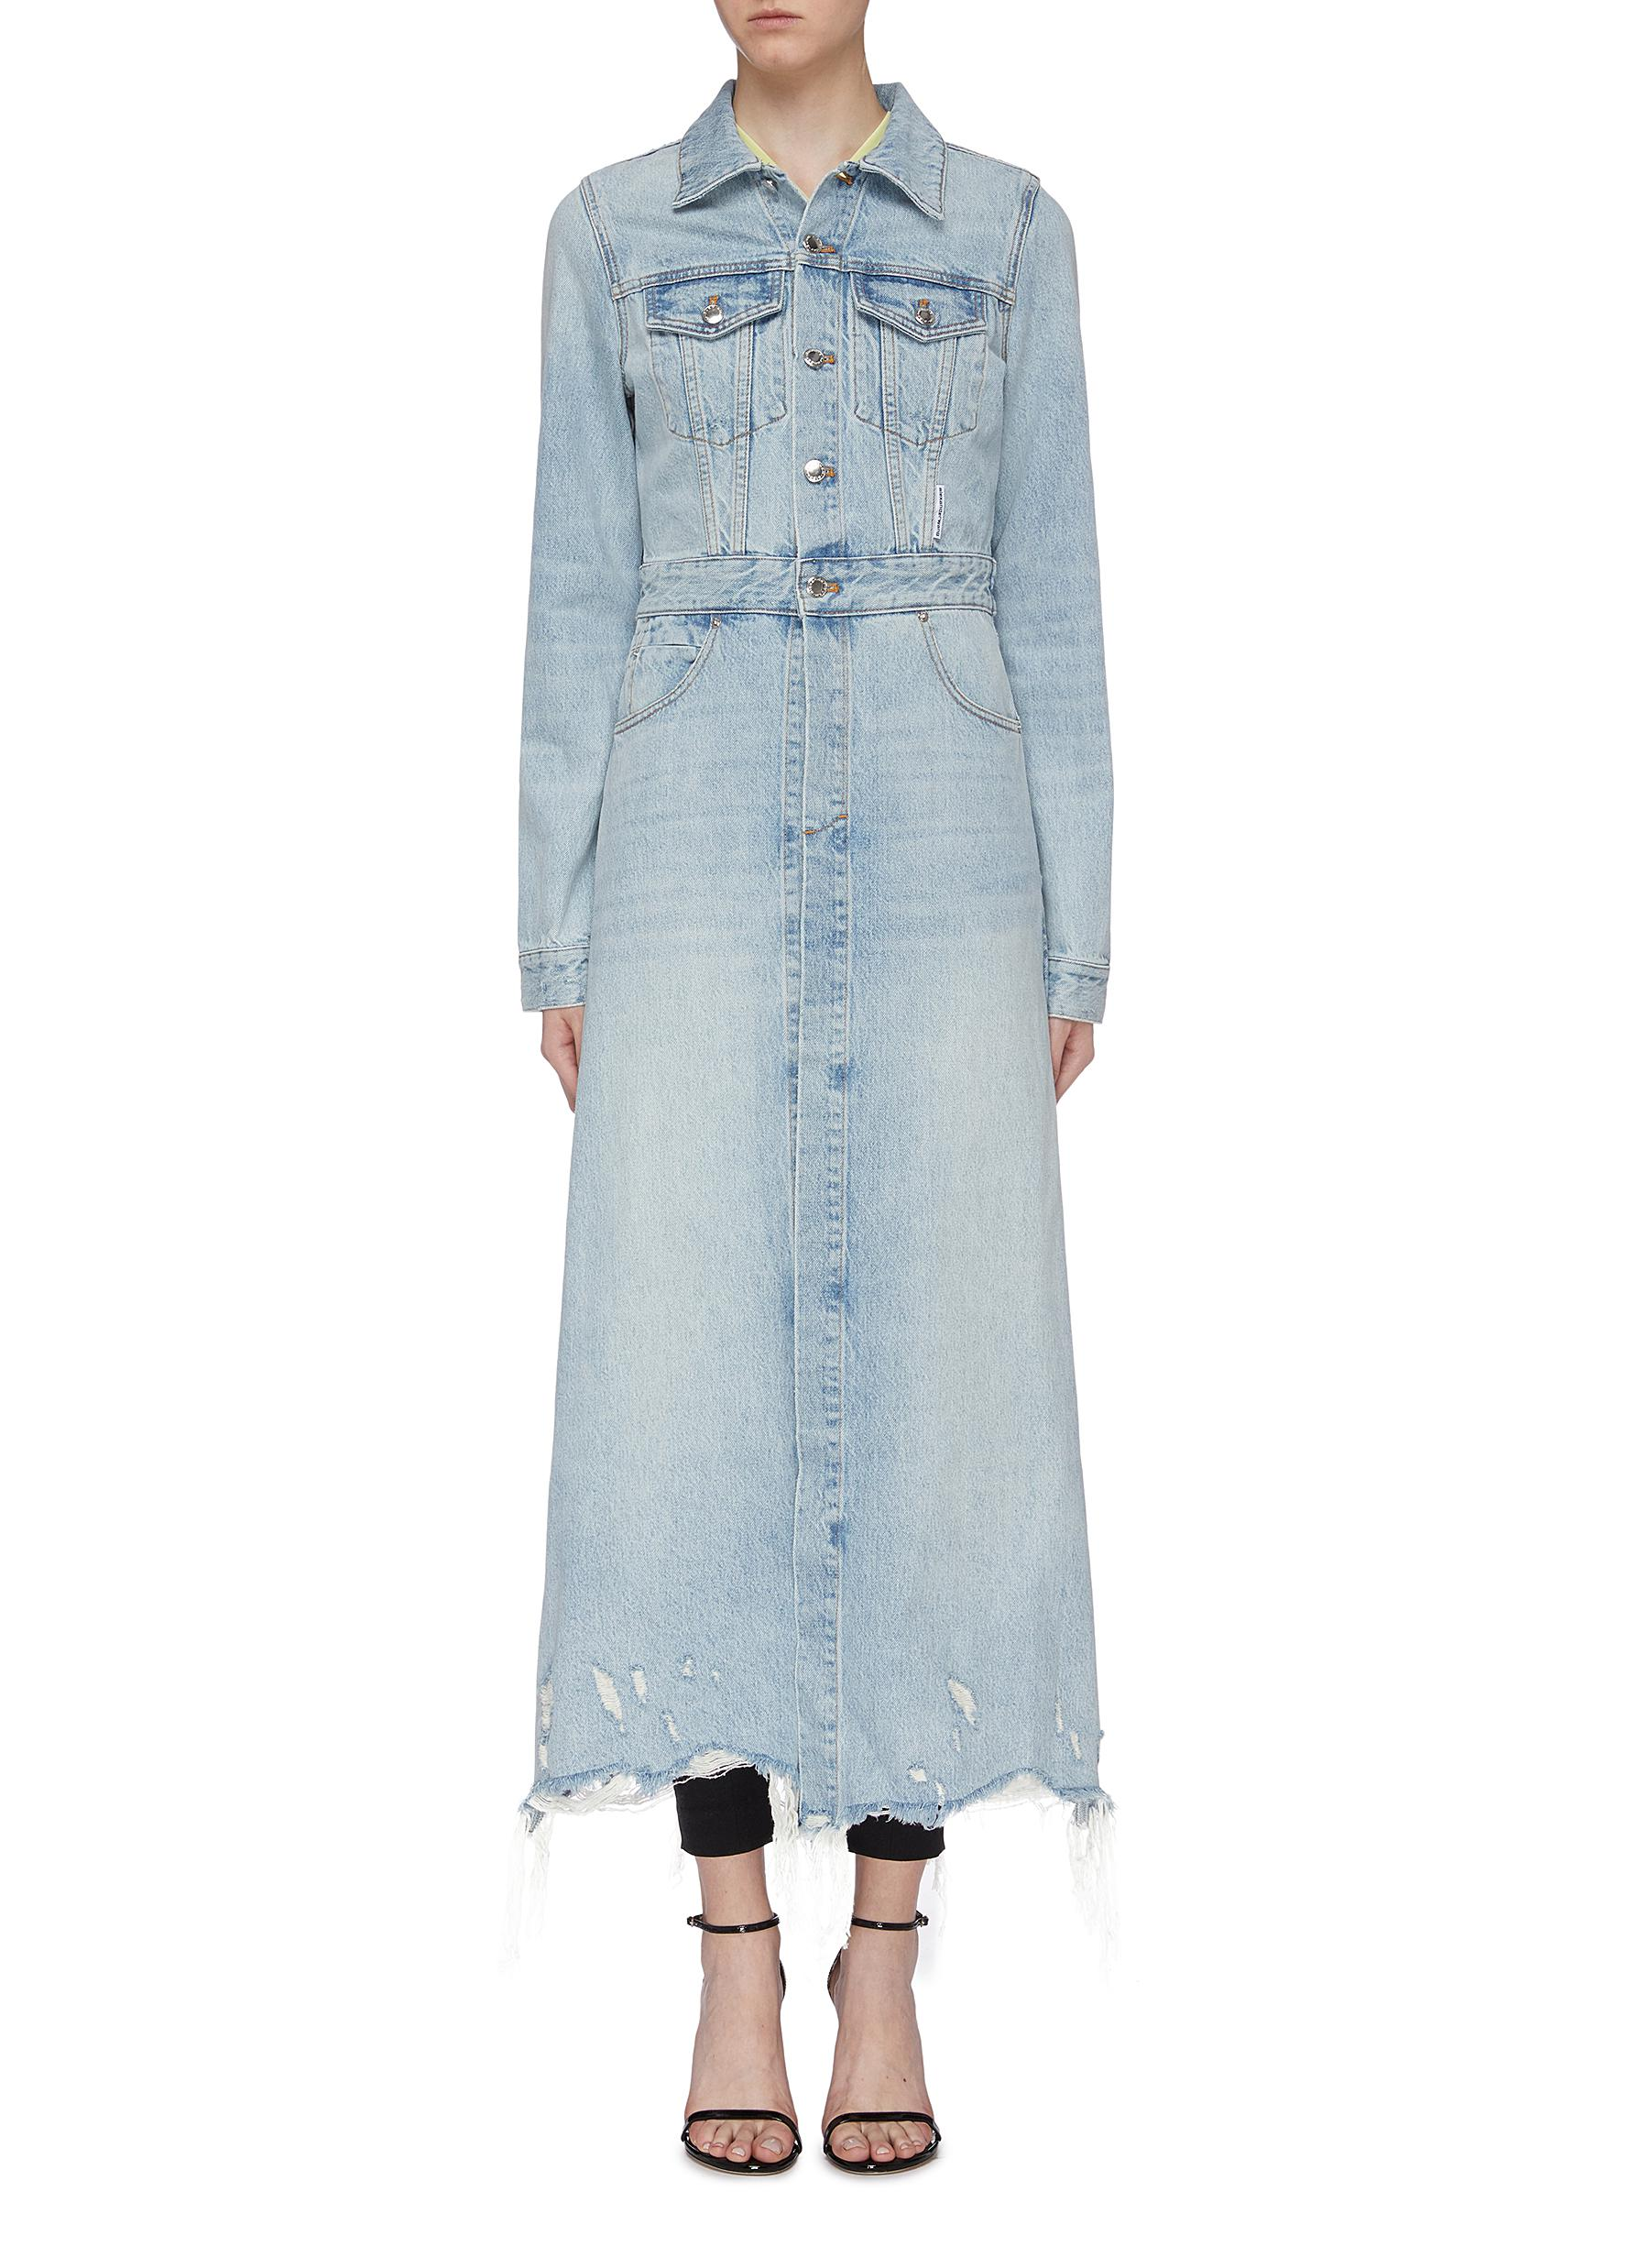 Raw hem distressed shrunken denim trench coat by Alexanderwang